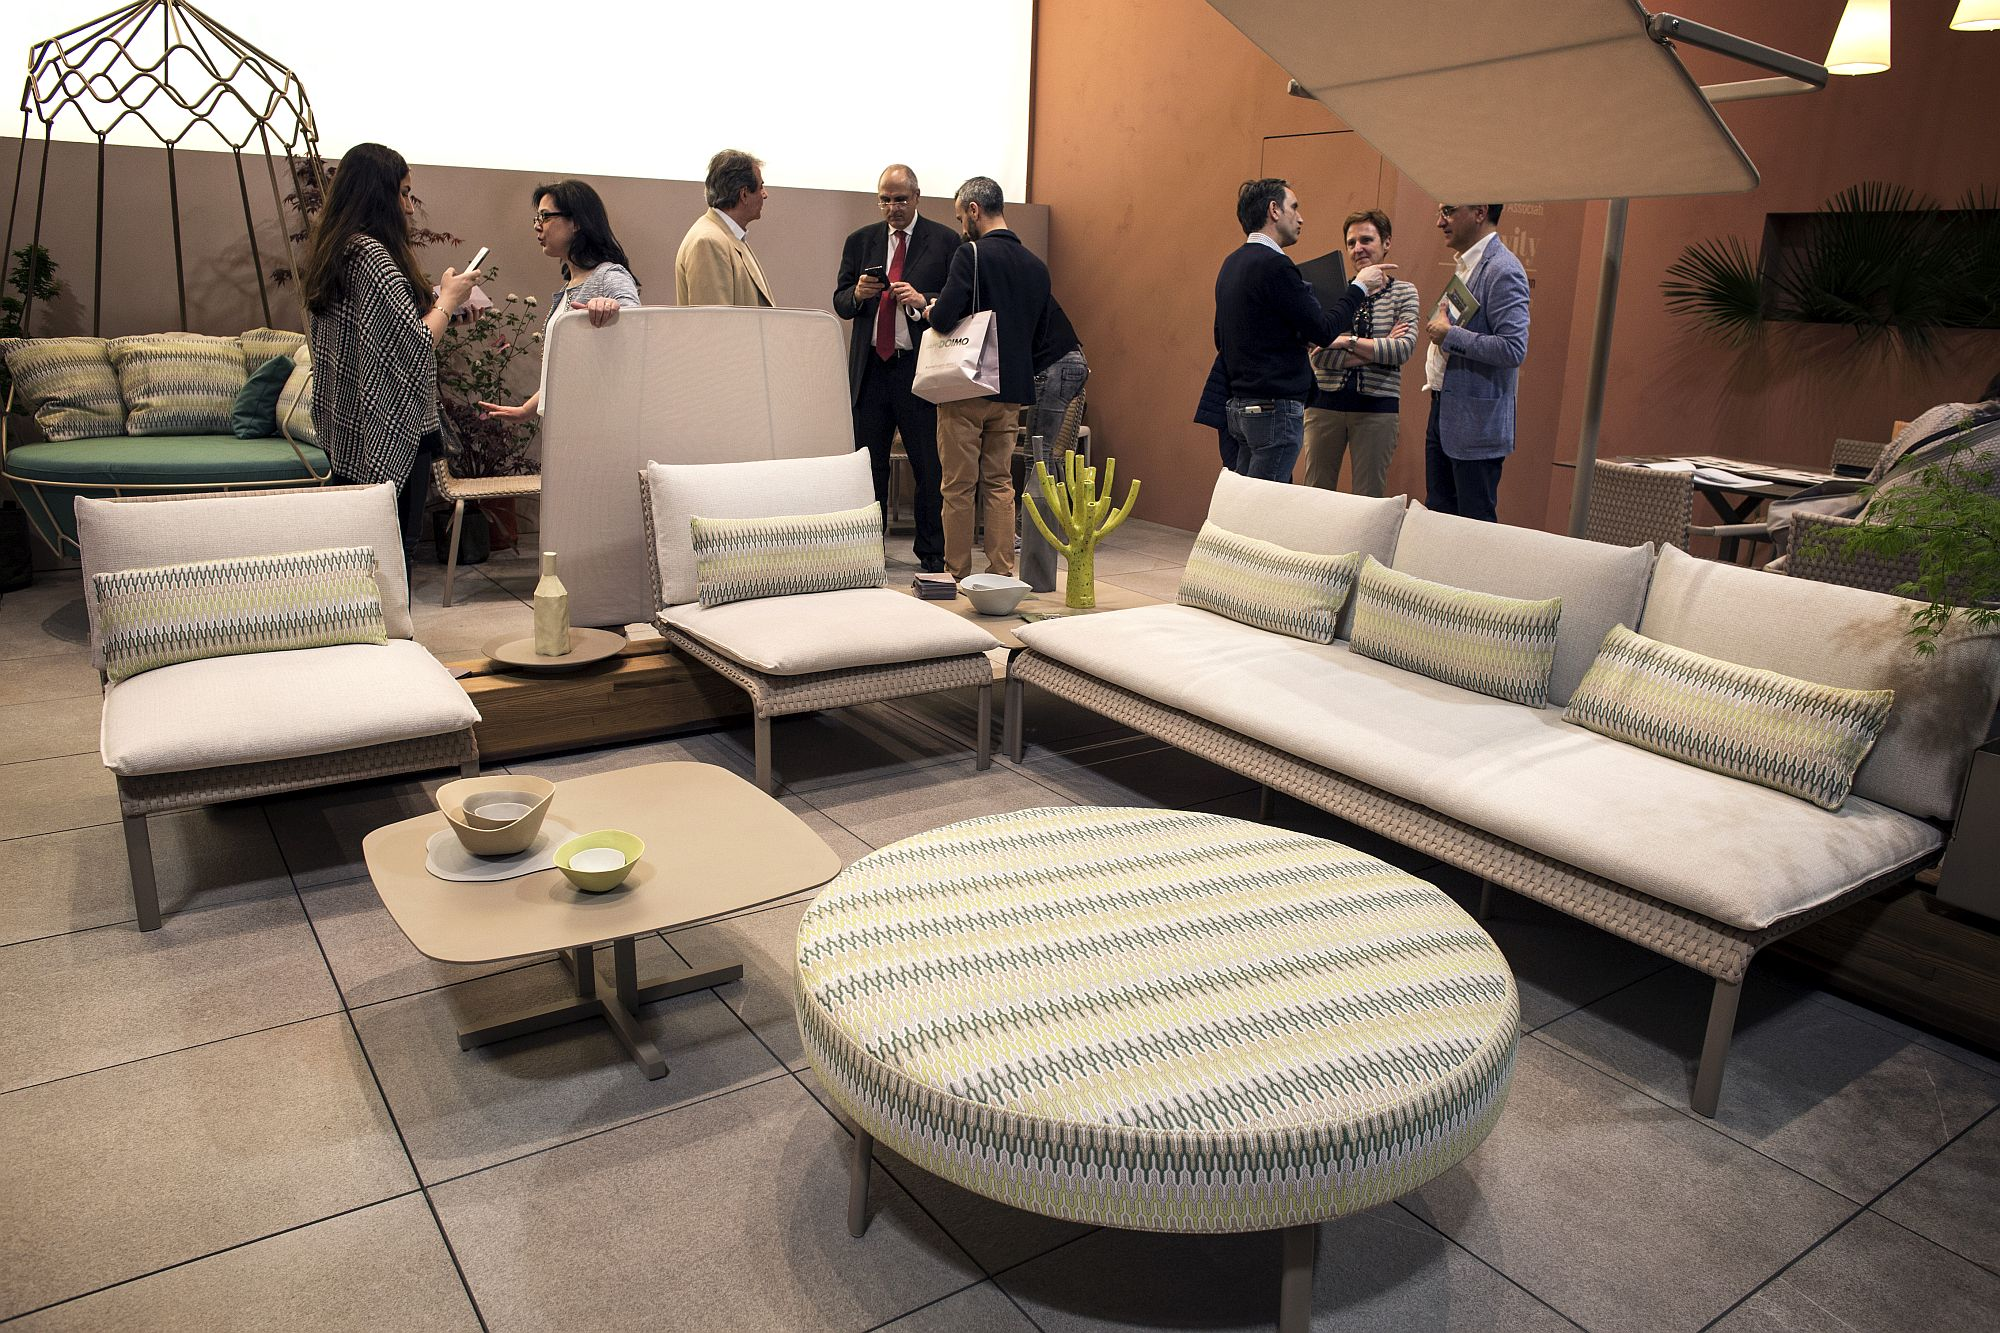 Snazzy and chic outdoor decor from Roberti